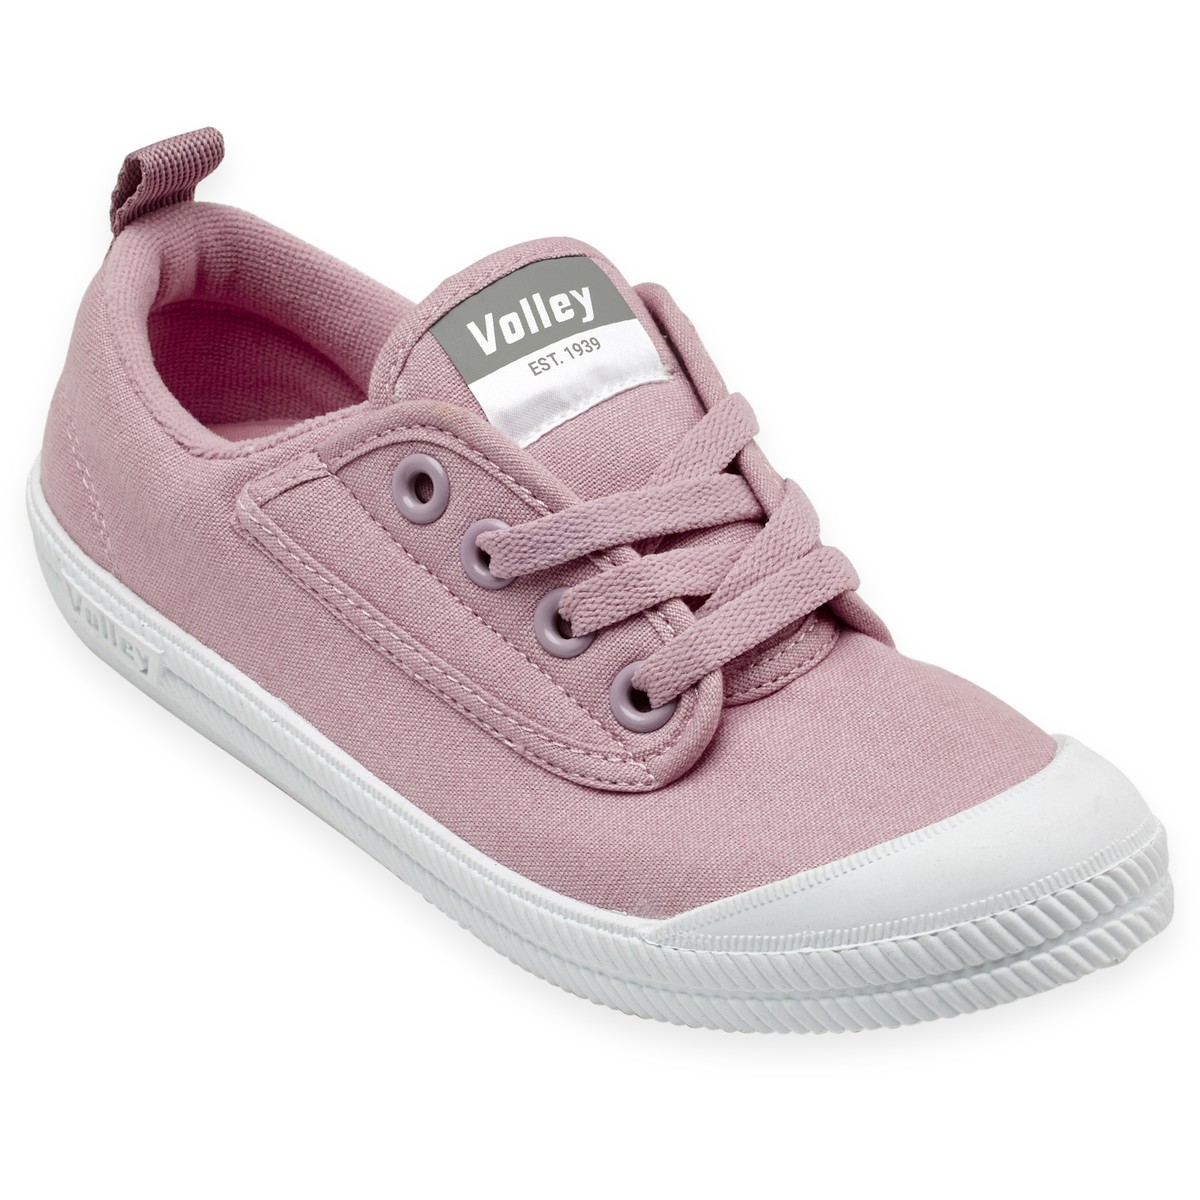 Big W Caps Volley Women S Sneakers Pink Size 8 Big W